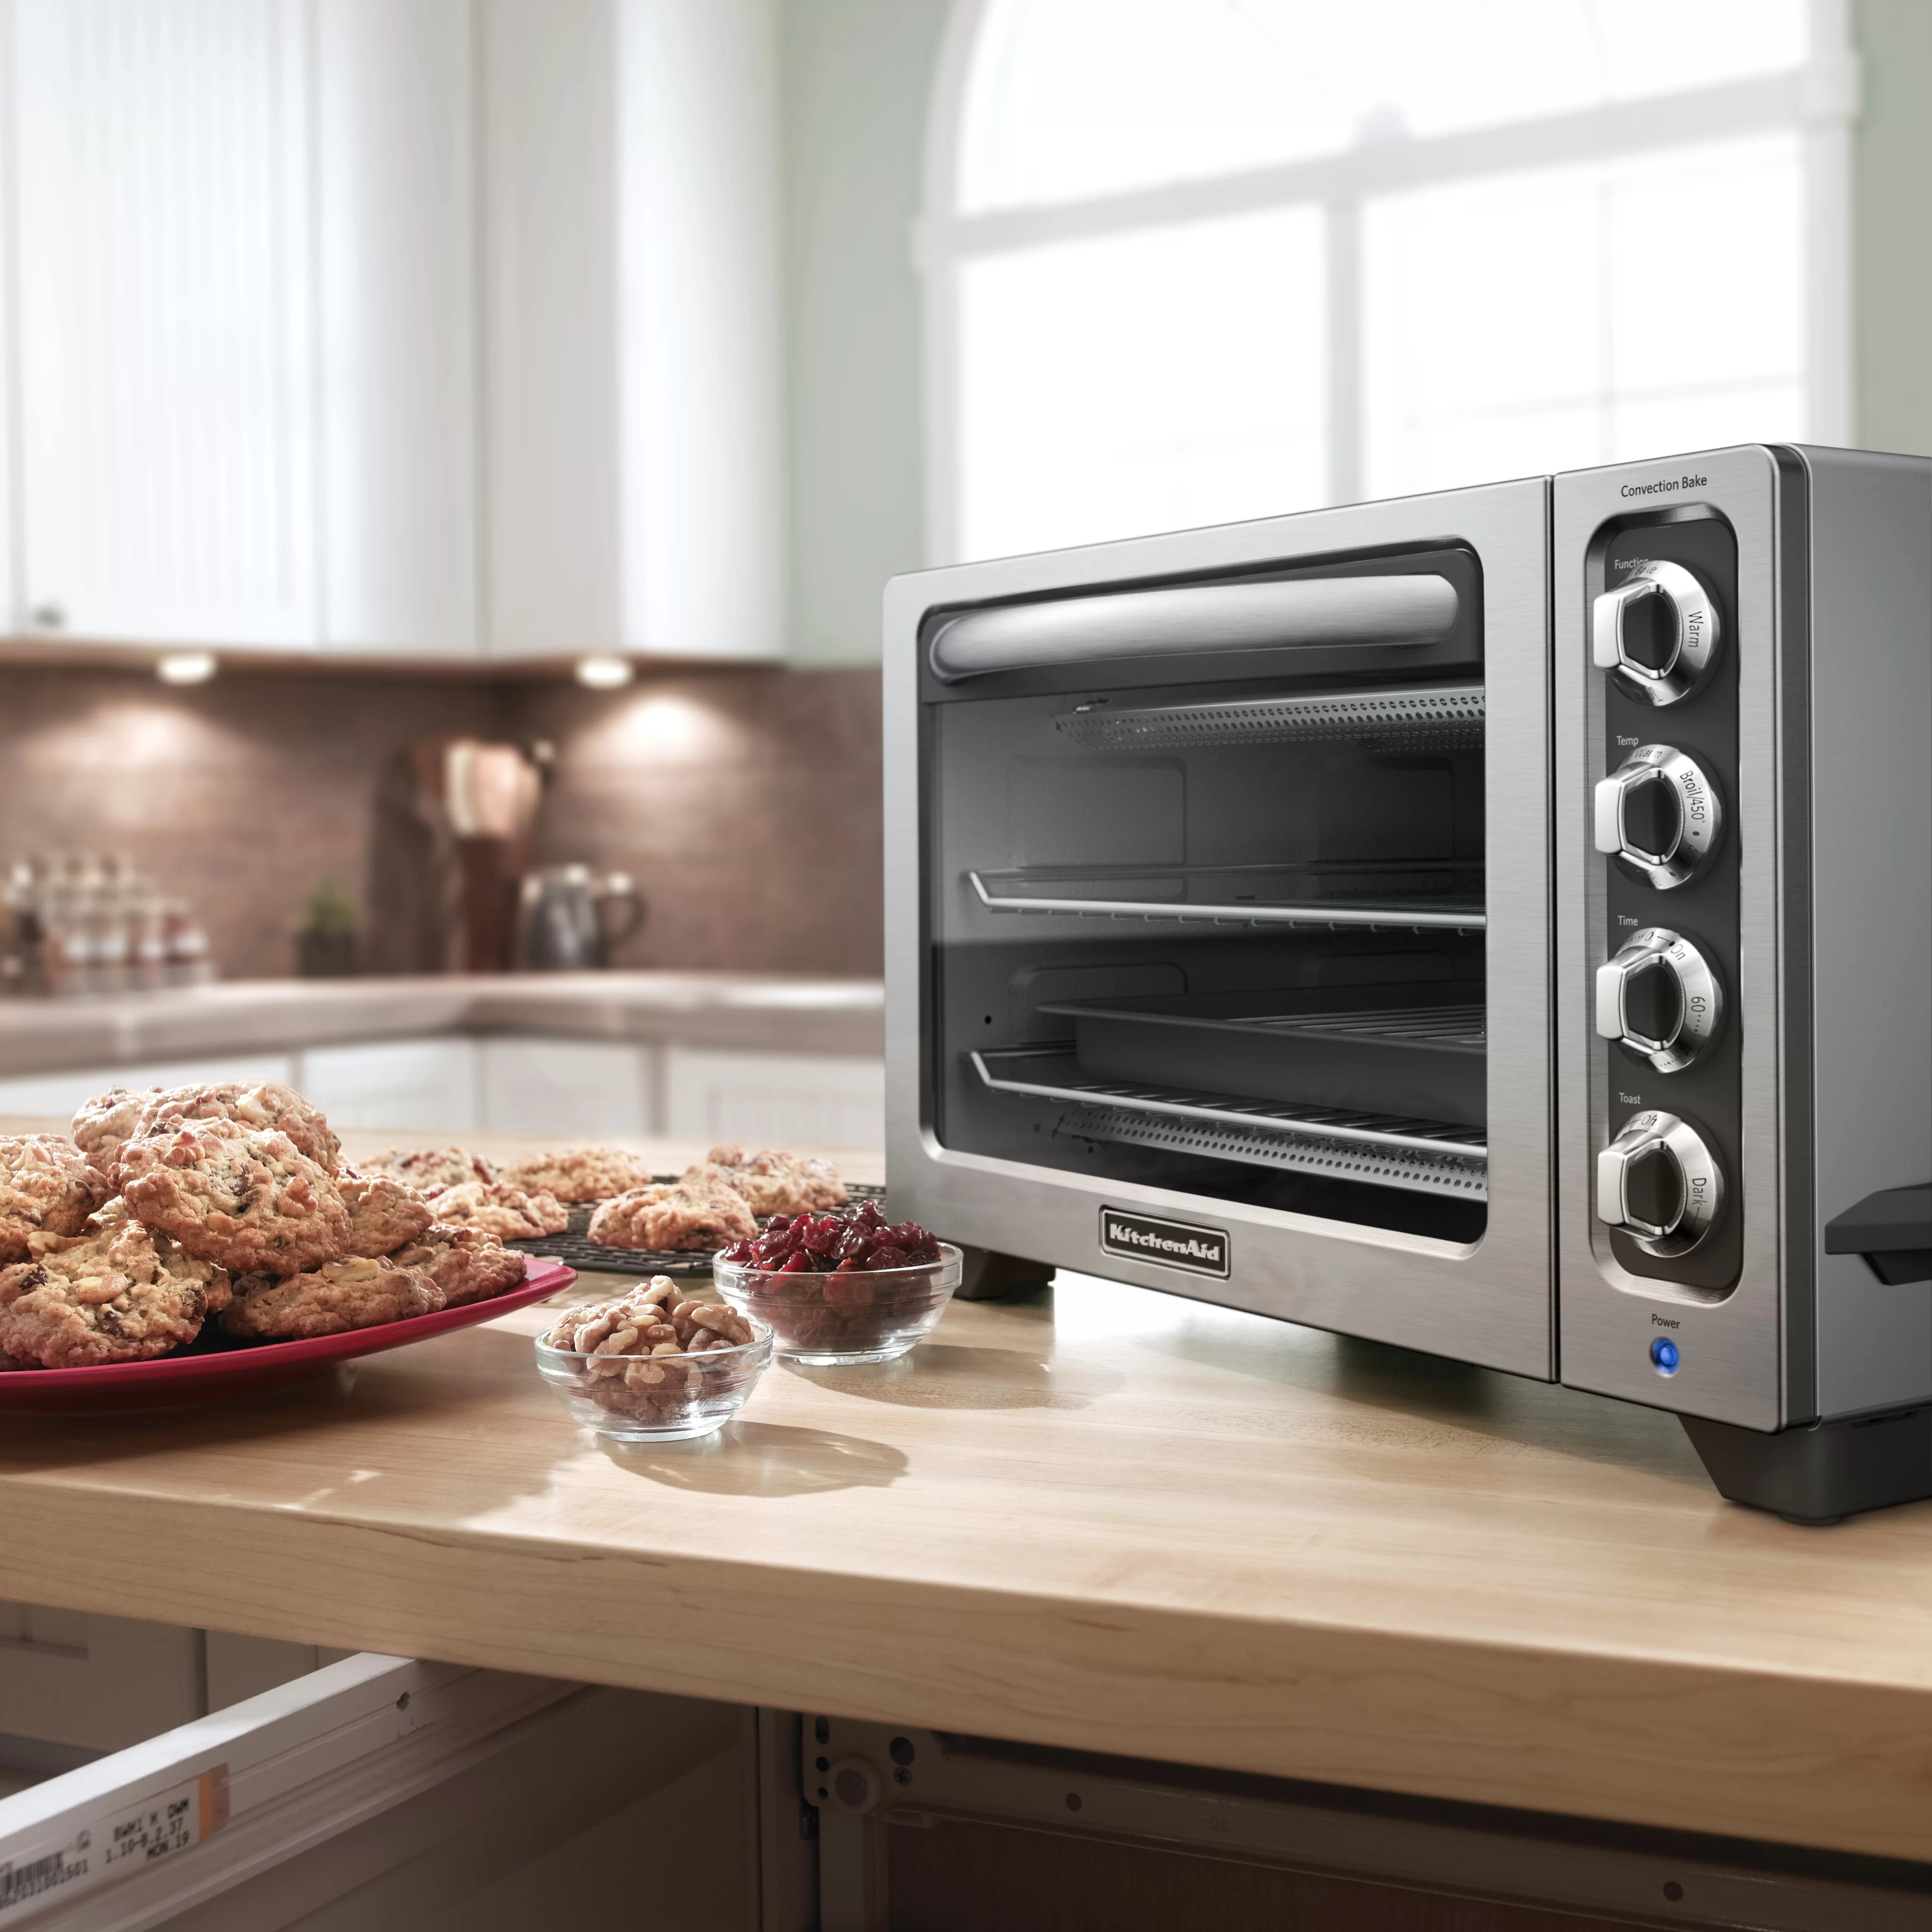 Countertop Ovens For Baking Kitchenaid 12 Quot Convection Bake Countertop Oven And Reviews